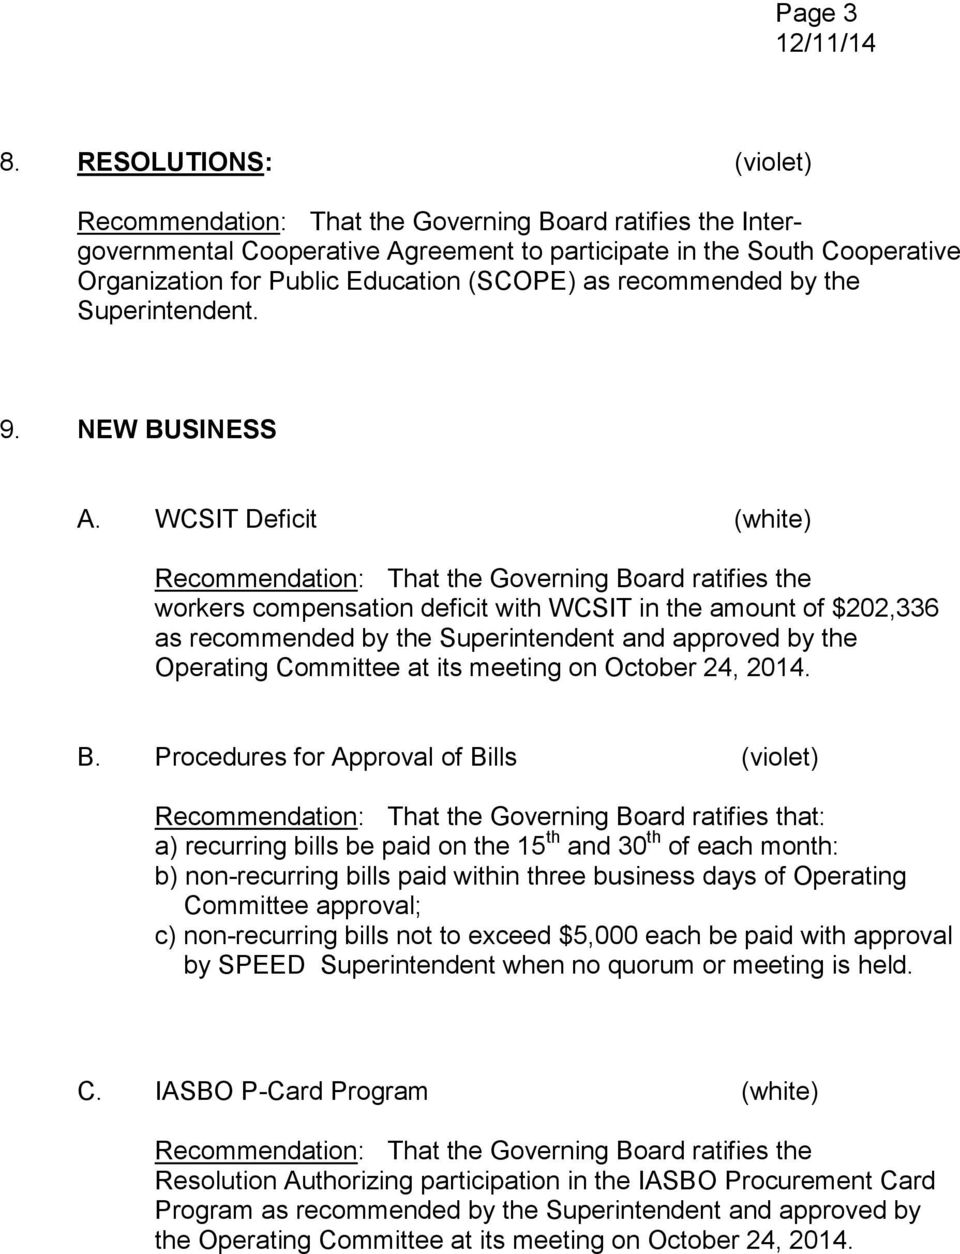 WCSIT Deficit (white) workers compensation deficit with WCSIT in the amount of $202,336 as recommended by the Superintendent and approved by the Operating Committee at its meeting on October 24, 2014.